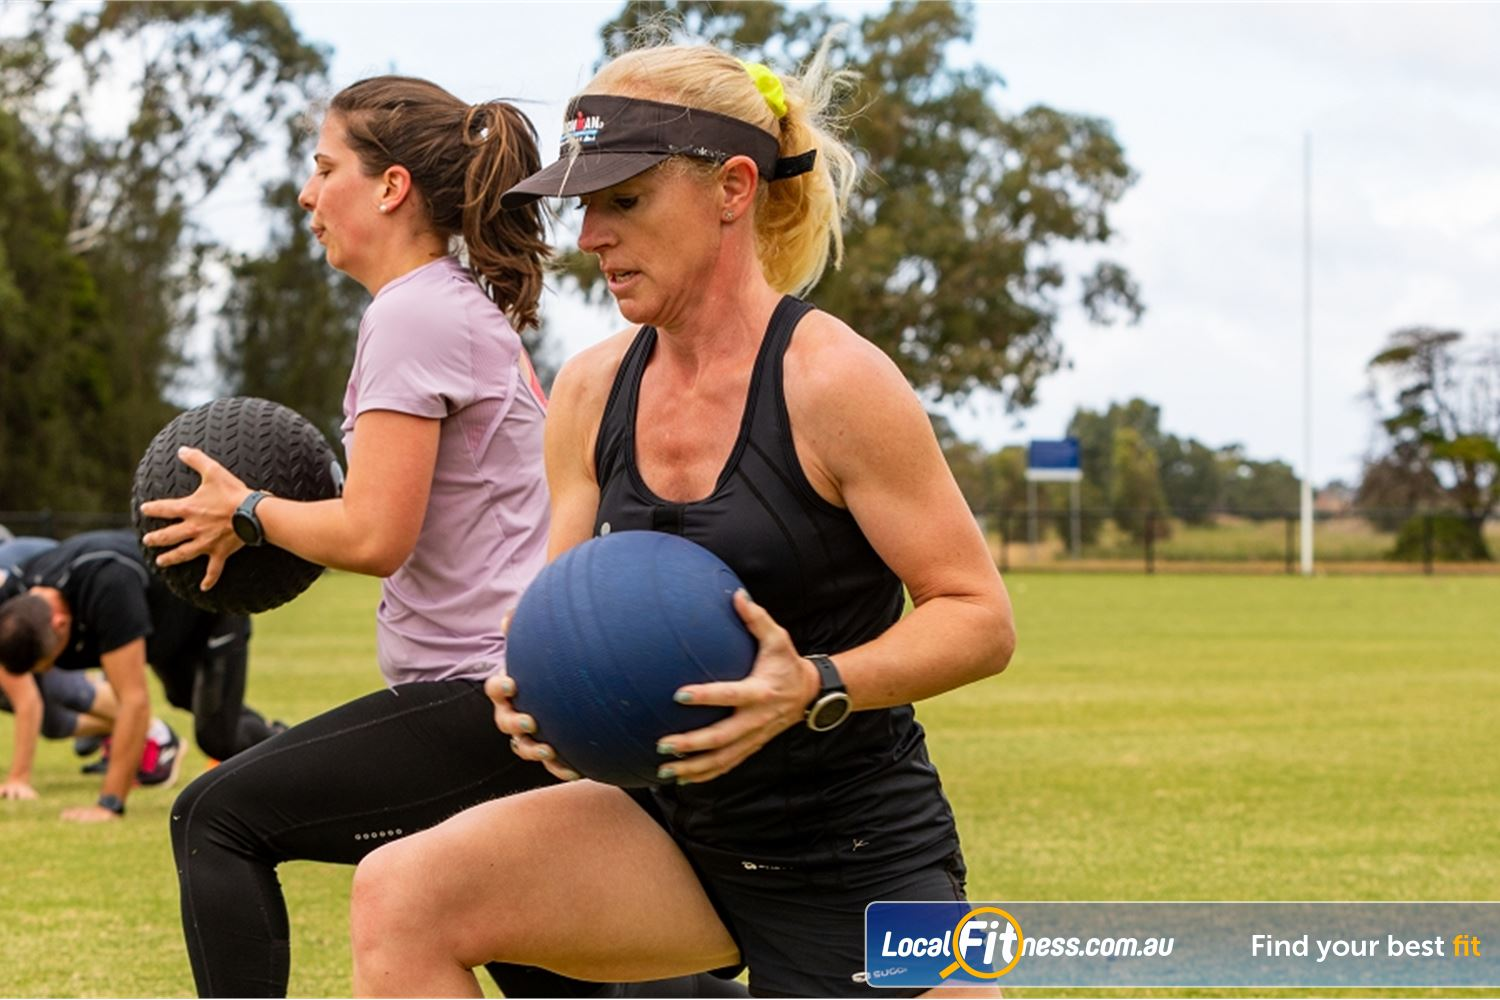 Step into Life Near Strathmore Increase your cardio and burn calories with our Essendon outdoor classes.